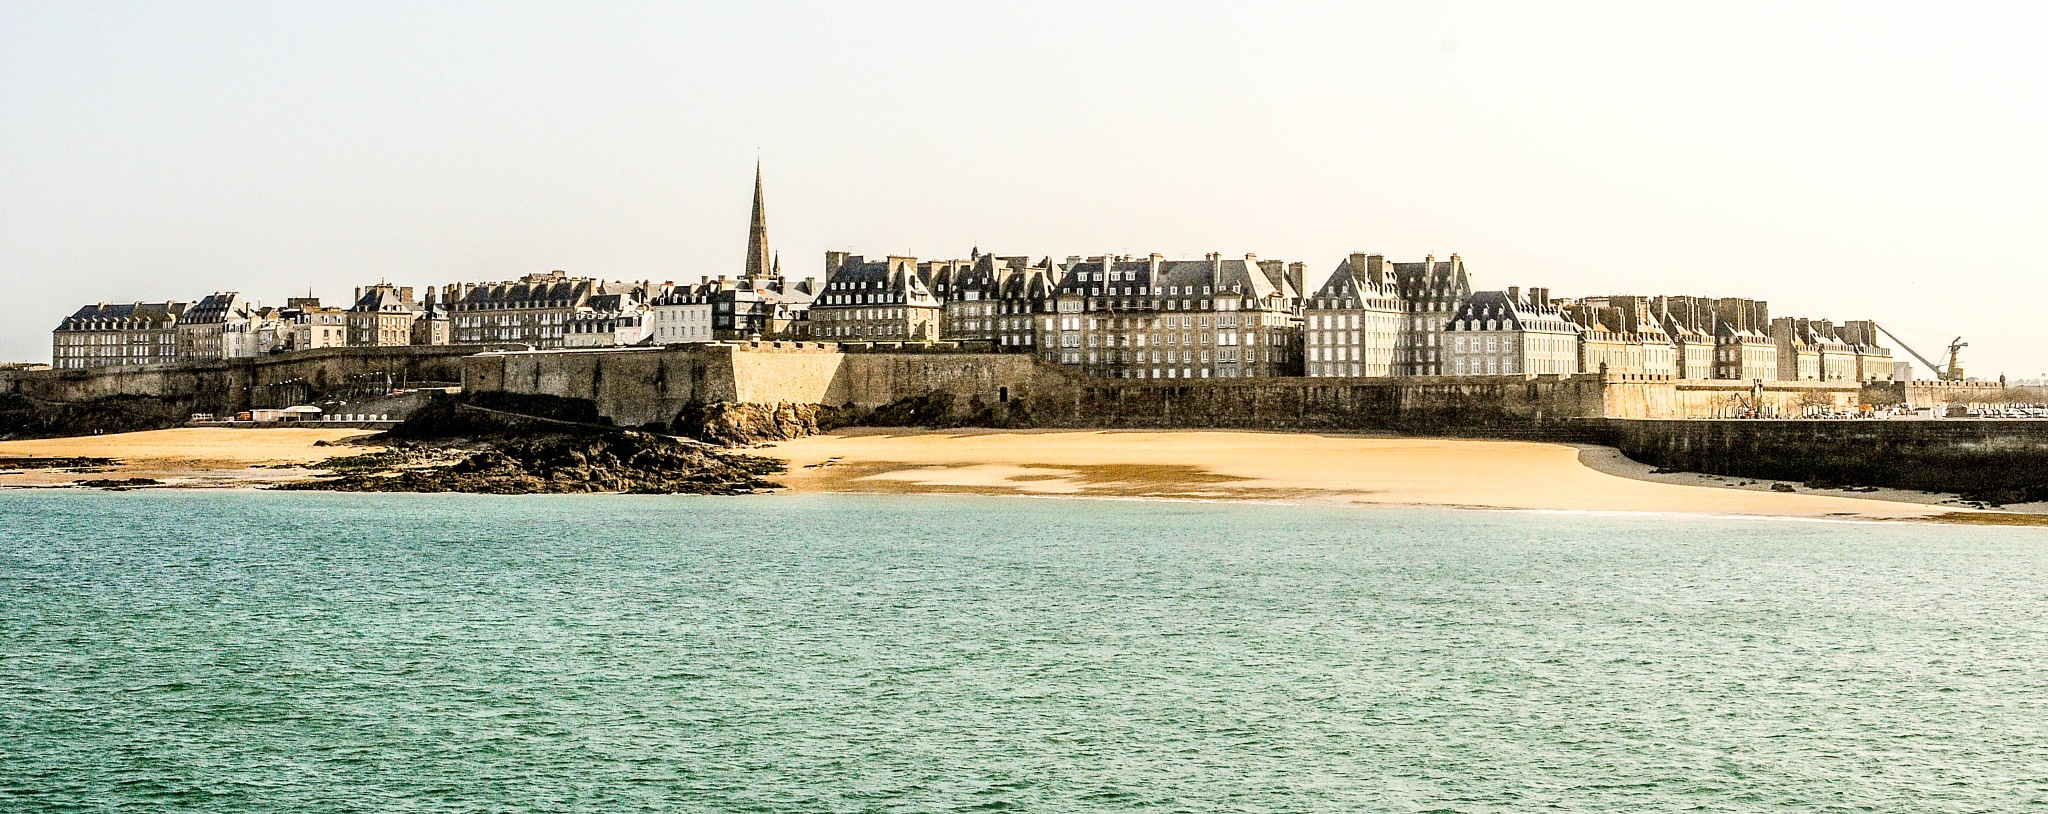 St Malo by Chuculain